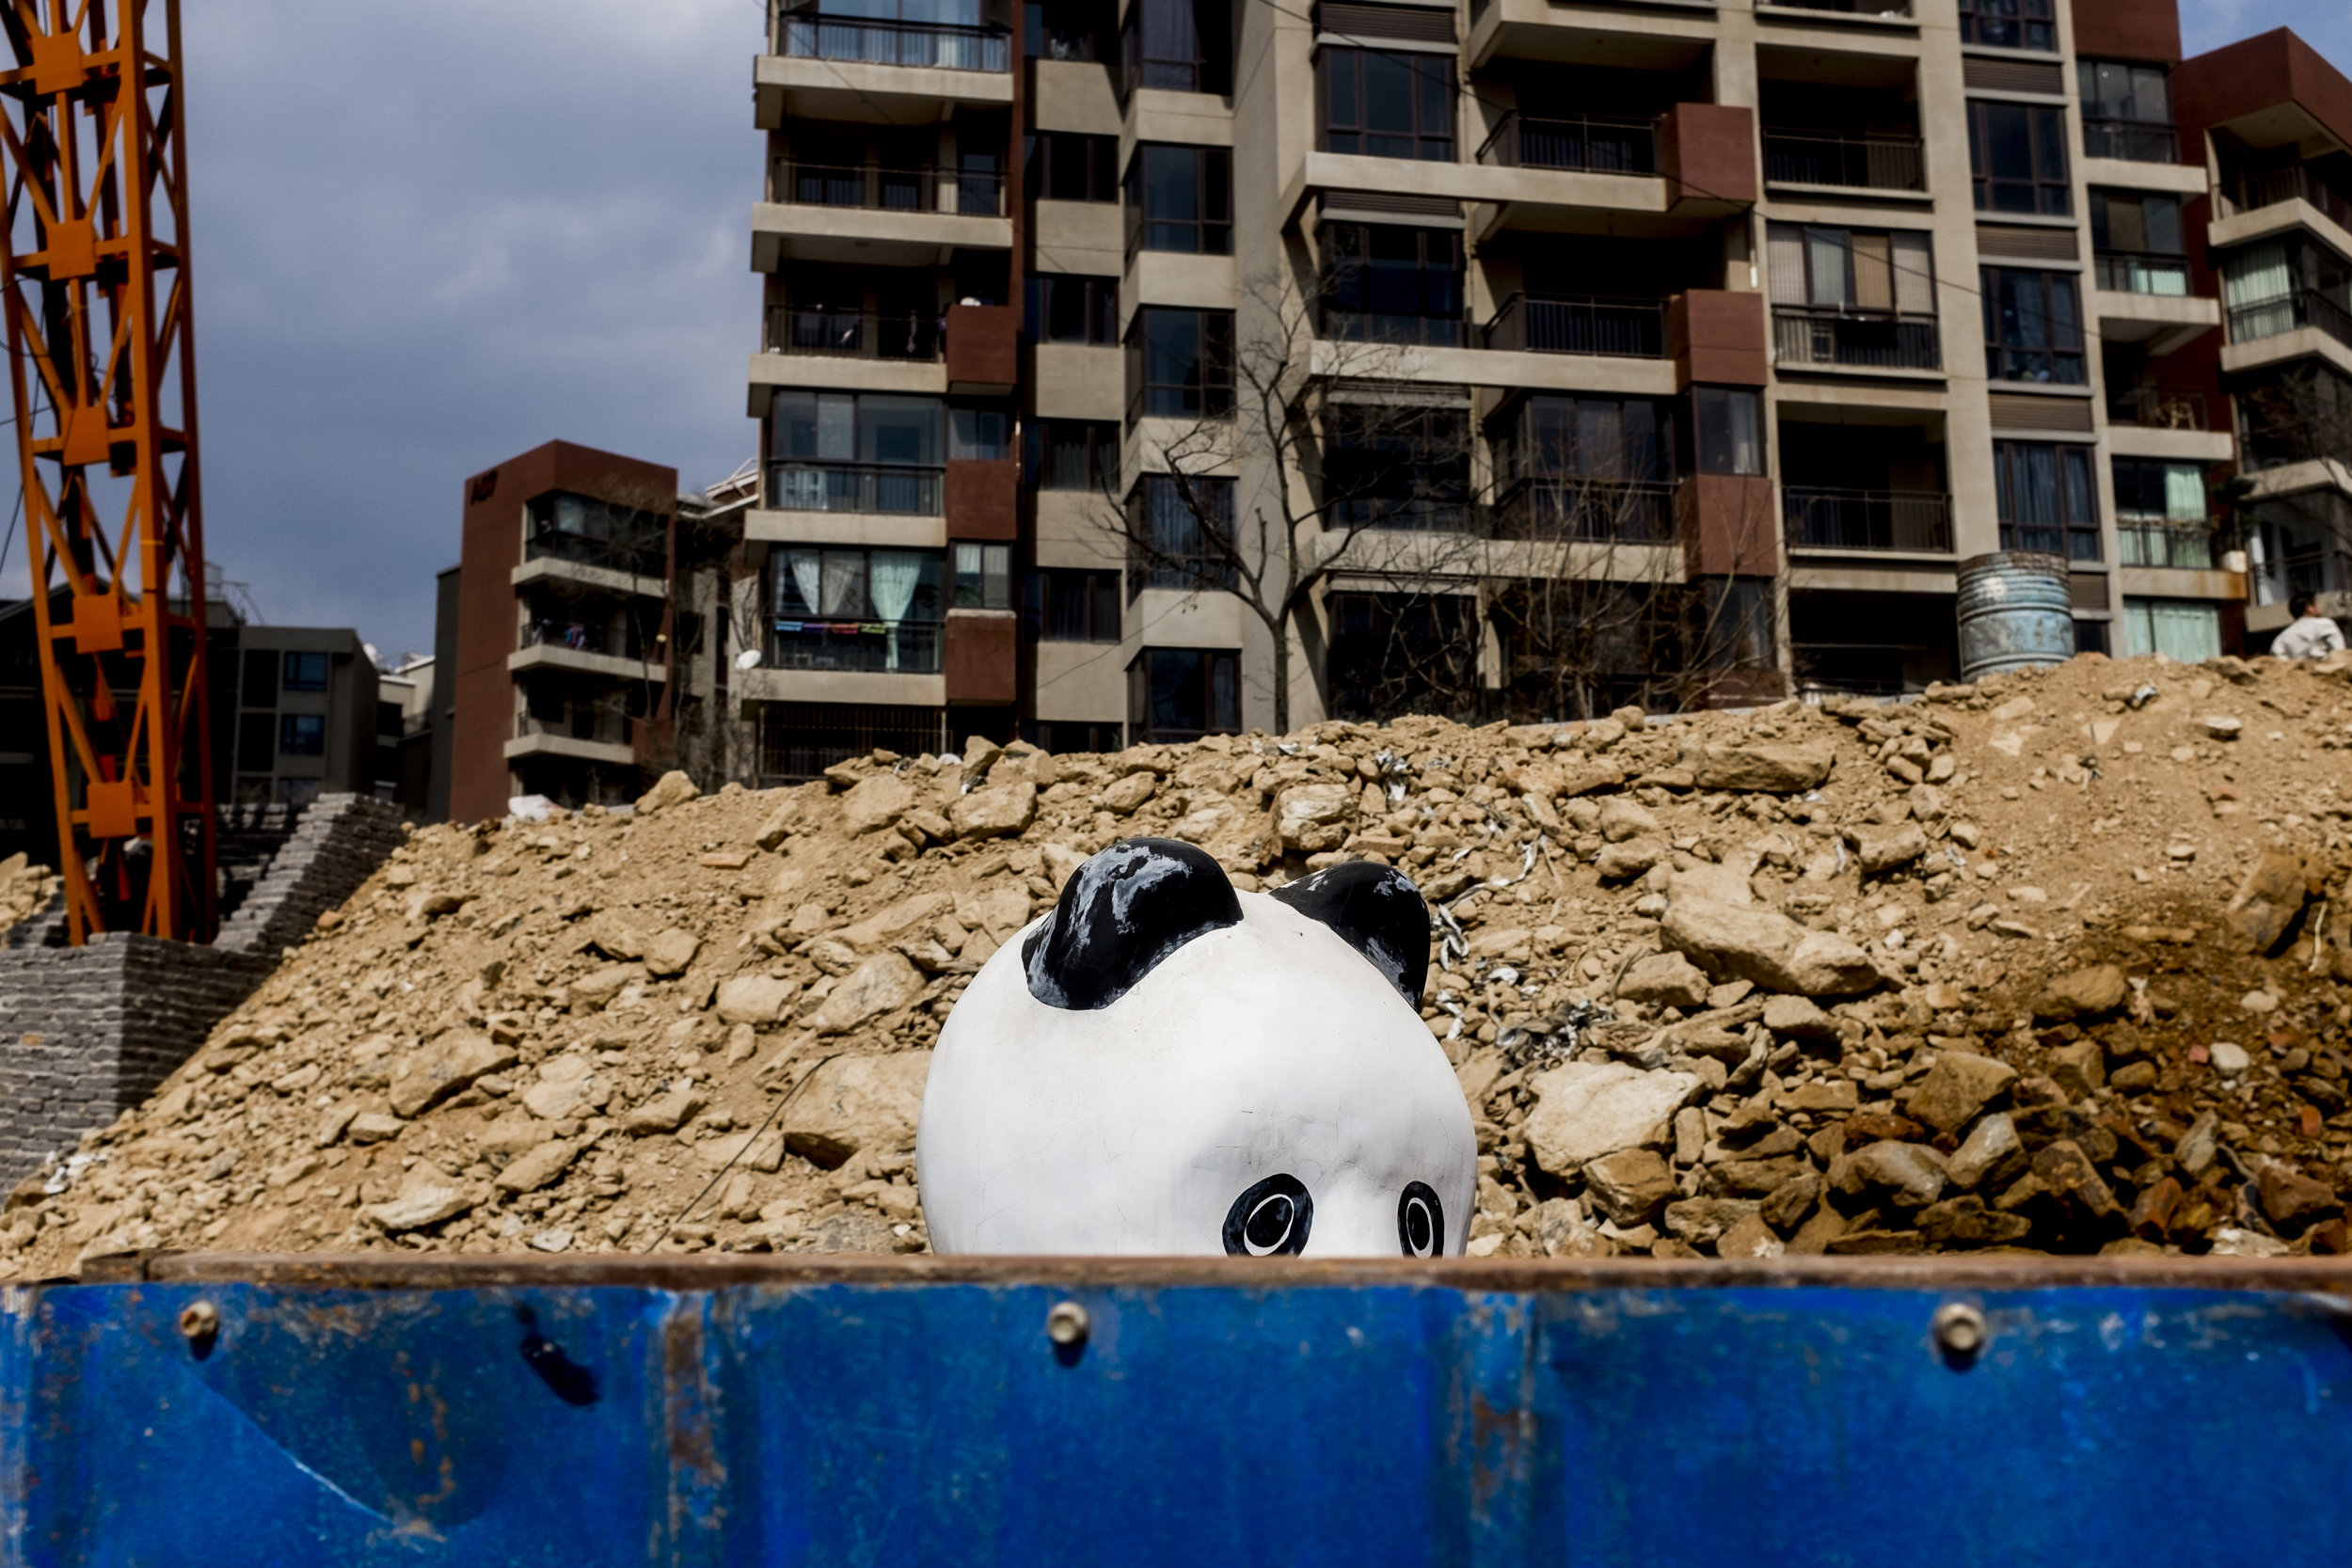 China loves to build. Since 1992, China has spent 9.5 percent of its revenues on infrastructure. To accommodate all the migrants, it is often built on the outskirts of the cities. In order to attract property buyers, it´s sometimes built amusement parks, such as here in Kunming. In China, there are about 67 Panda reserves, which protect 66% of the wild pandas.